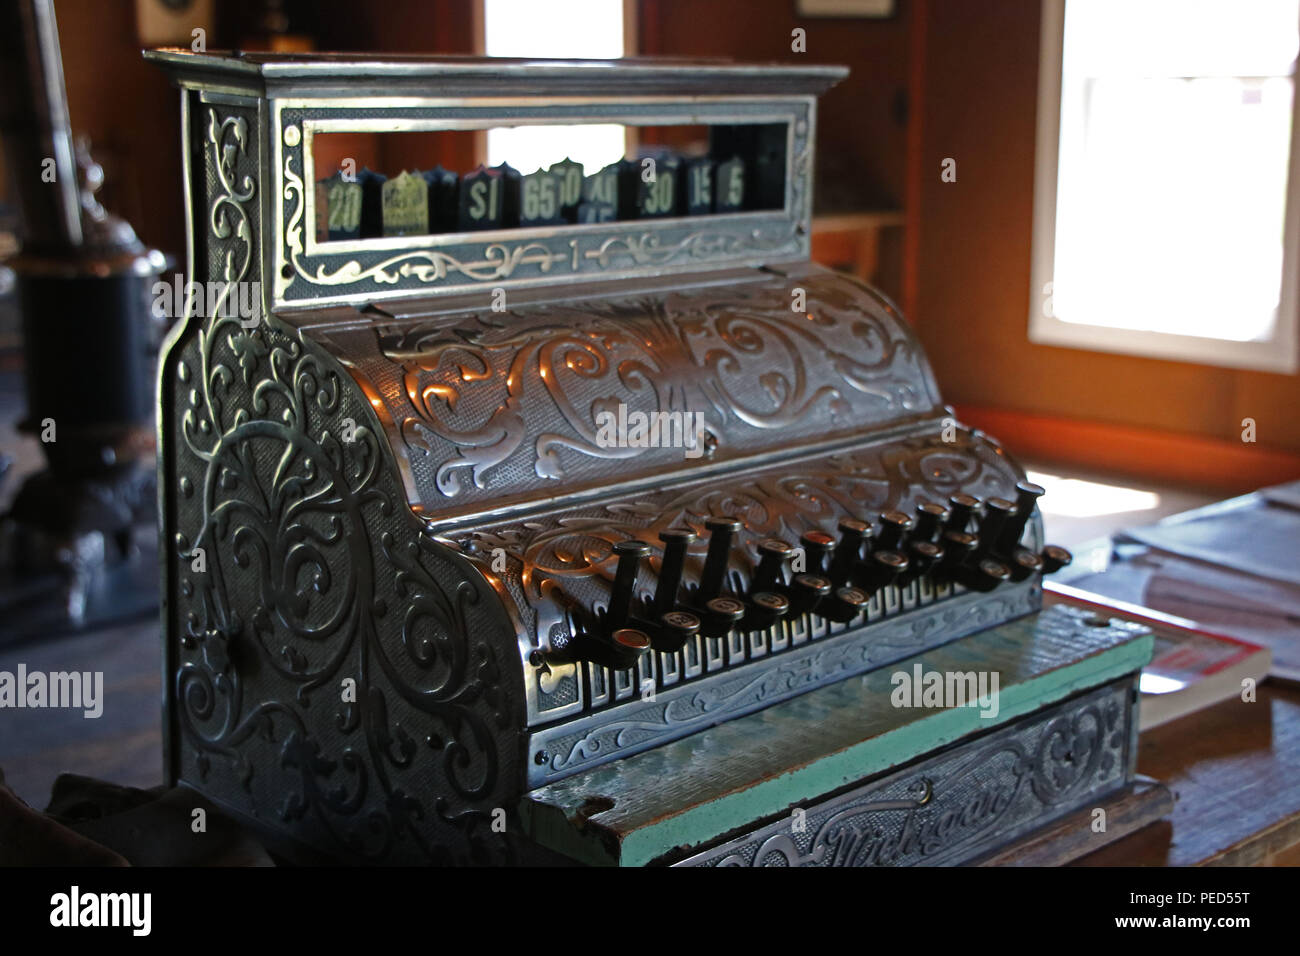 Antique Cash Register. Alberta, Canada - Stock Image